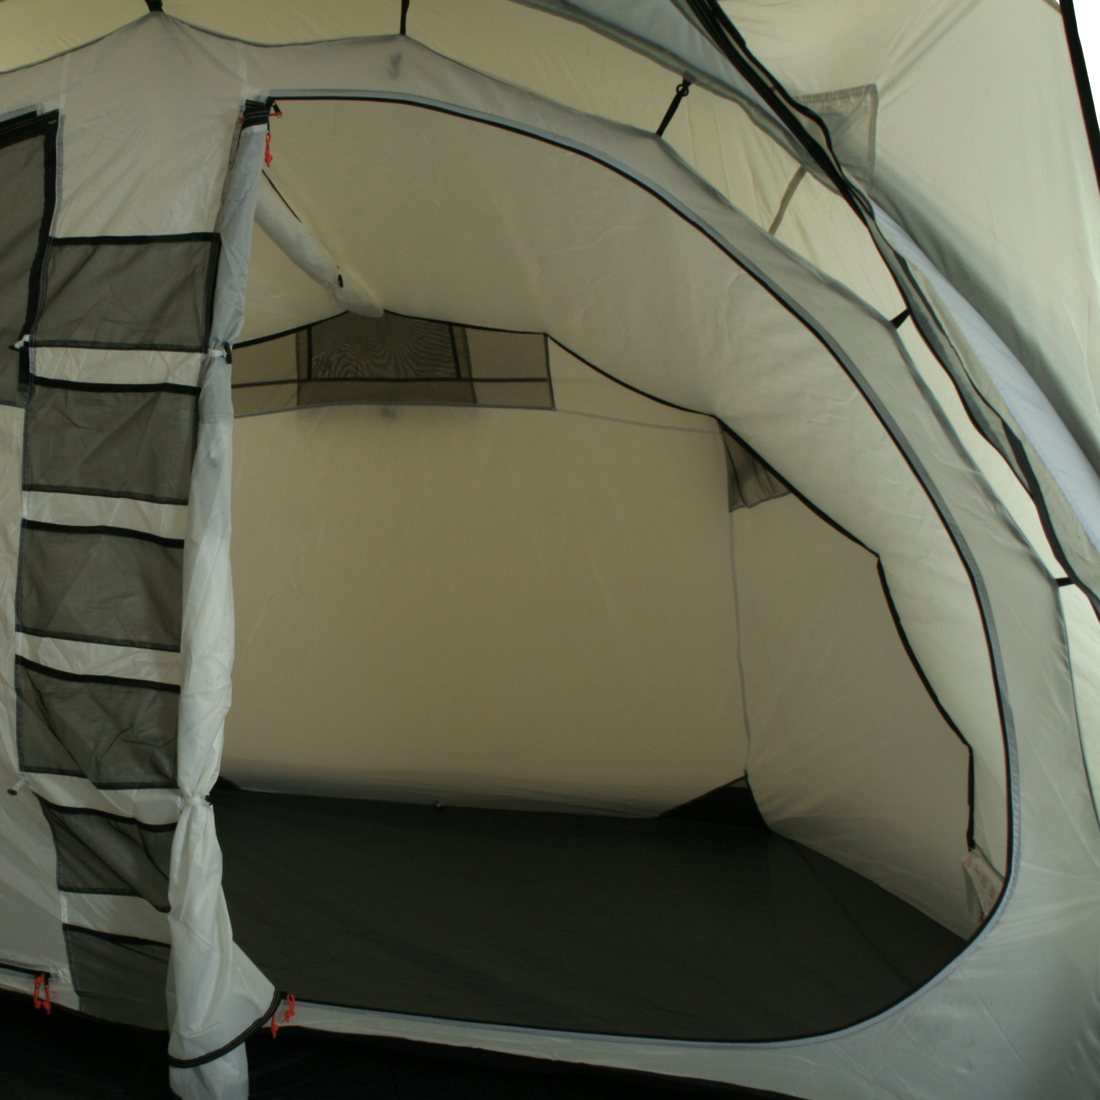 10T Kenton 4 person apsis tunnel tent with full ground